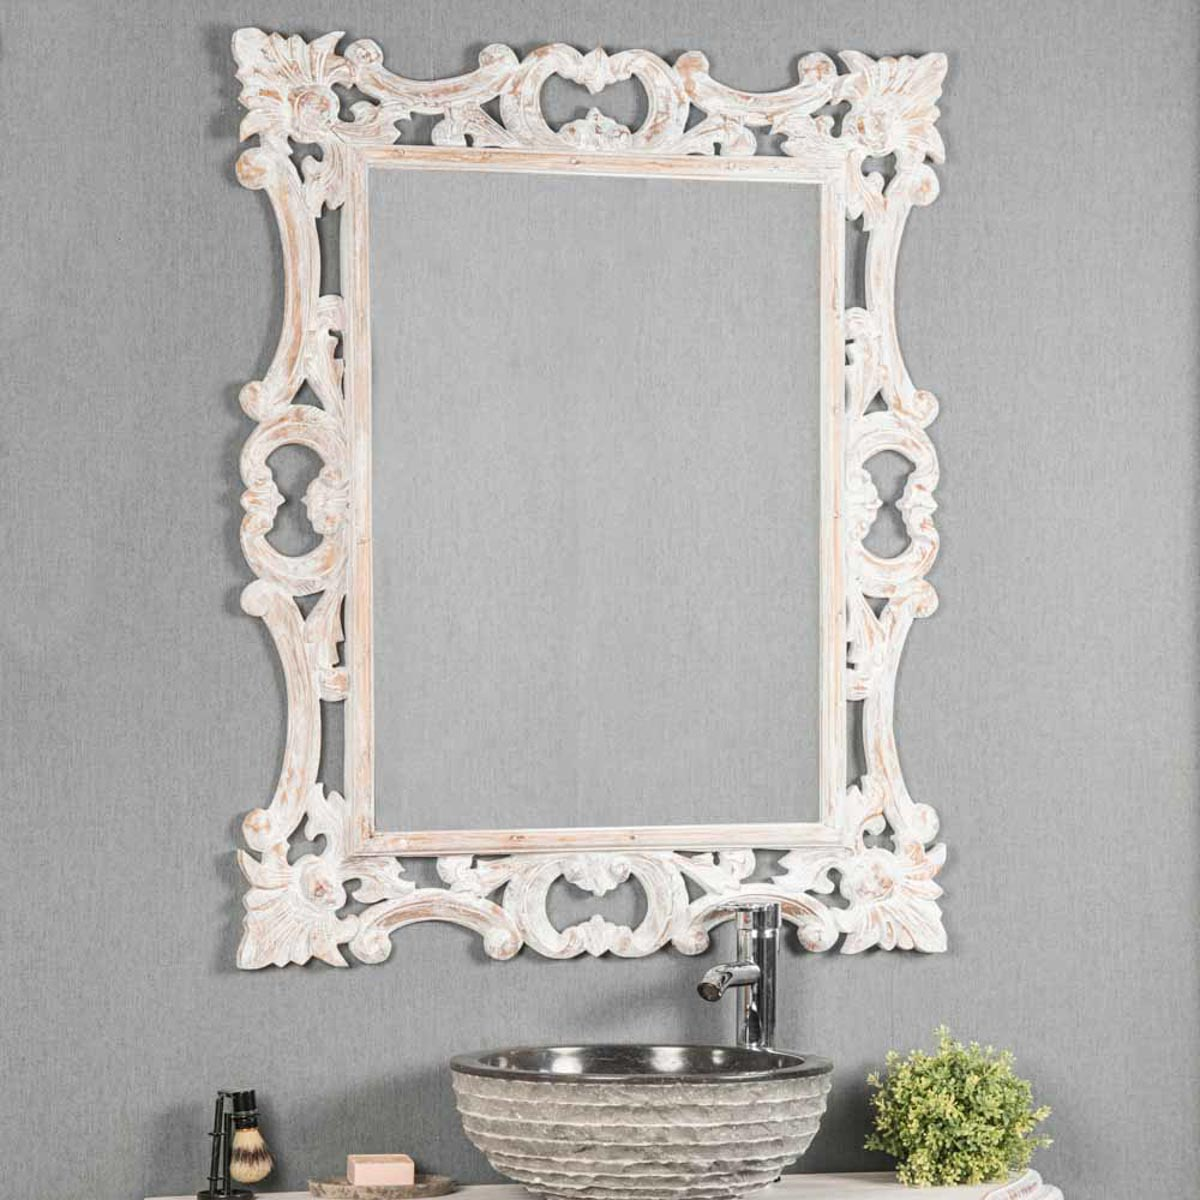 miroir de d coration en bois massif baroque rectangulaire bois patin blanc l 100 cm. Black Bedroom Furniture Sets. Home Design Ideas